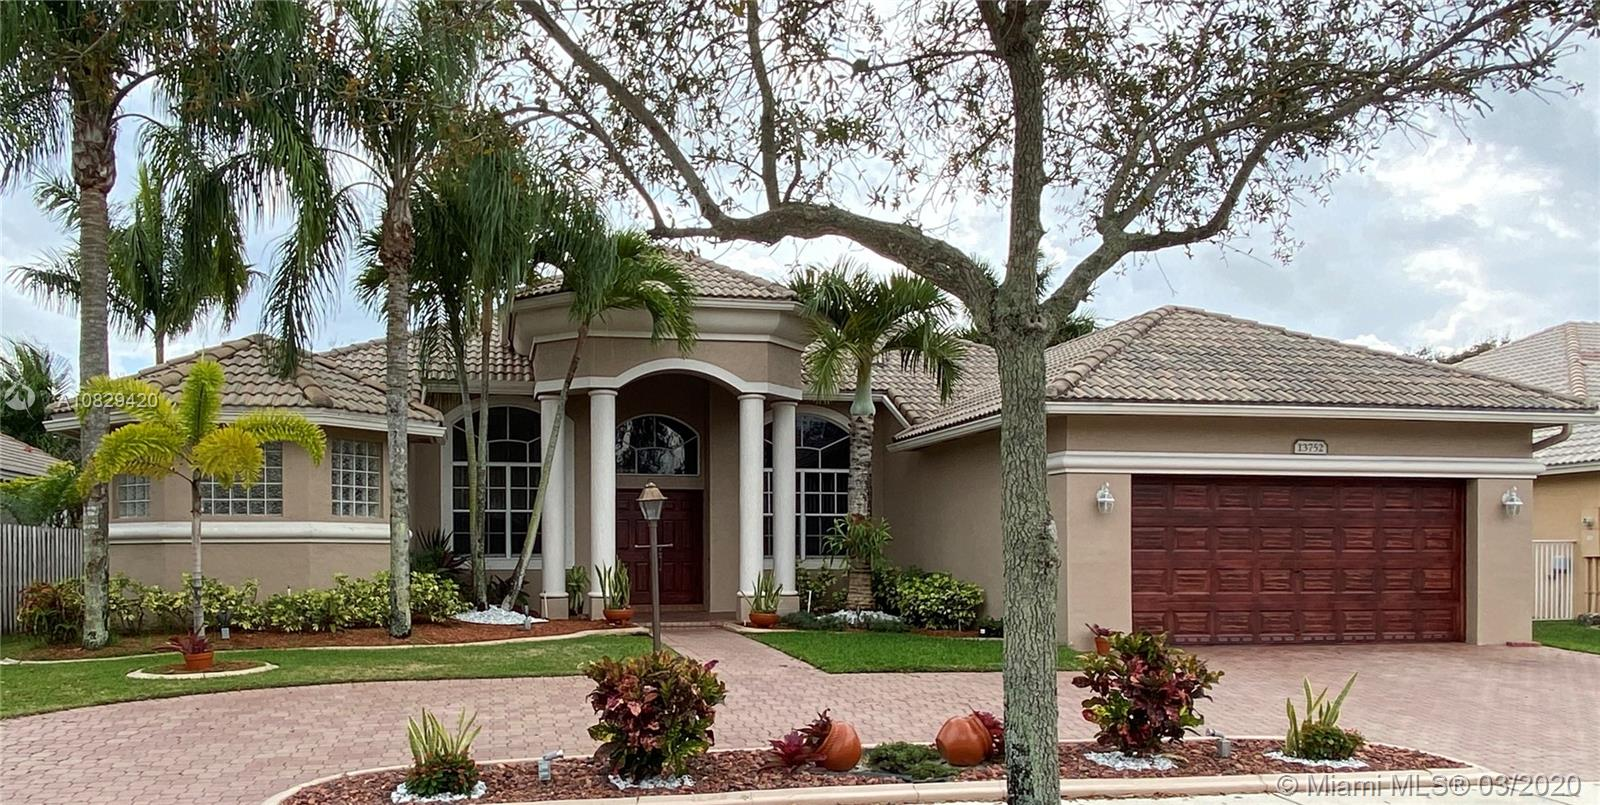 SOUGHT AFTER MONTERREY MODEL LOCATED IN THE DESIRED COMMUNITY OF PEMBROKE FALLS. THIS ONE STORY,  4 BEDROOM PLUS STUDY HOUSE, IS A SPECTACULAR HOME FOR A FAMILY HAS MANY UPGRADES IN THE KITCHEN INCLUDING NEW STAINLESS STEEL APPLIANCES AND UPGRADES IN THE MASTER BATHROOM.  HOME WAS RECENTLY PAINTED, INCLUDING WOOD IMITATION ACCENT AT GARAGE AND MAIN DOORS.   THE CIRCULAR DRIVEWAY AND TWO CAR GARAGE PROVIDES AMPLE PARKING ROOM FOR A GROWING FAMILY.  OWNERS RECENTLY REPLACED ALL KITCHEN APPLIANCES, THE WASHER AND DRYER, AND THE AC UNITS.  HOME HAS NATURAL GAS FOR STOVE, H2O WATER HEATER, BARBEQUE GRILL, AND GAS LAMP AT FRONT OF PROPERTY.  